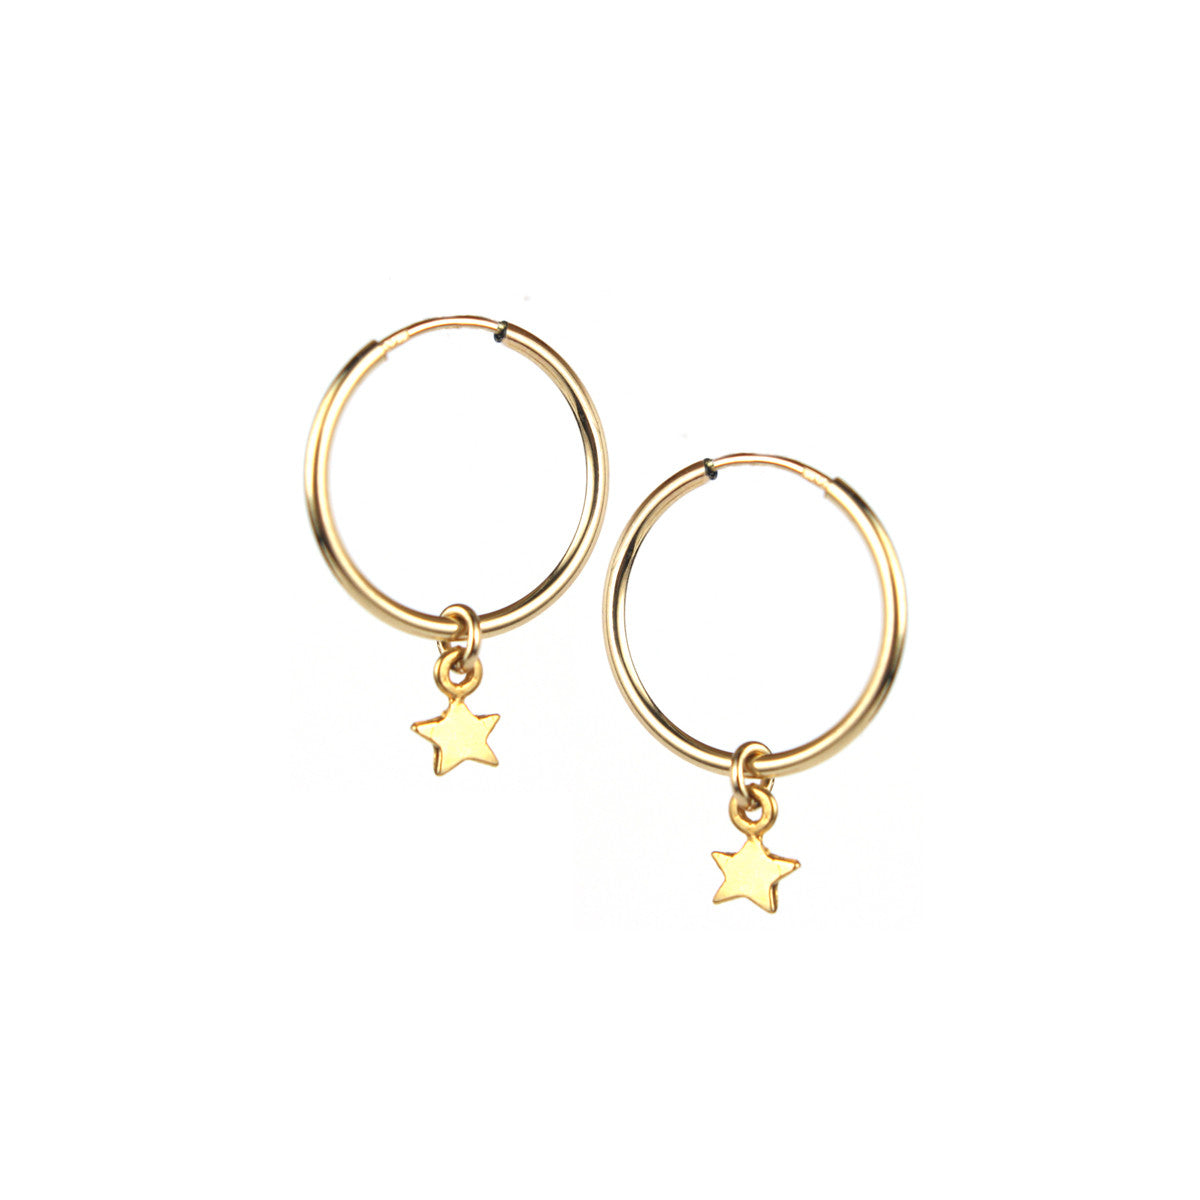 Twinkle Twinkle Hoop Earrings